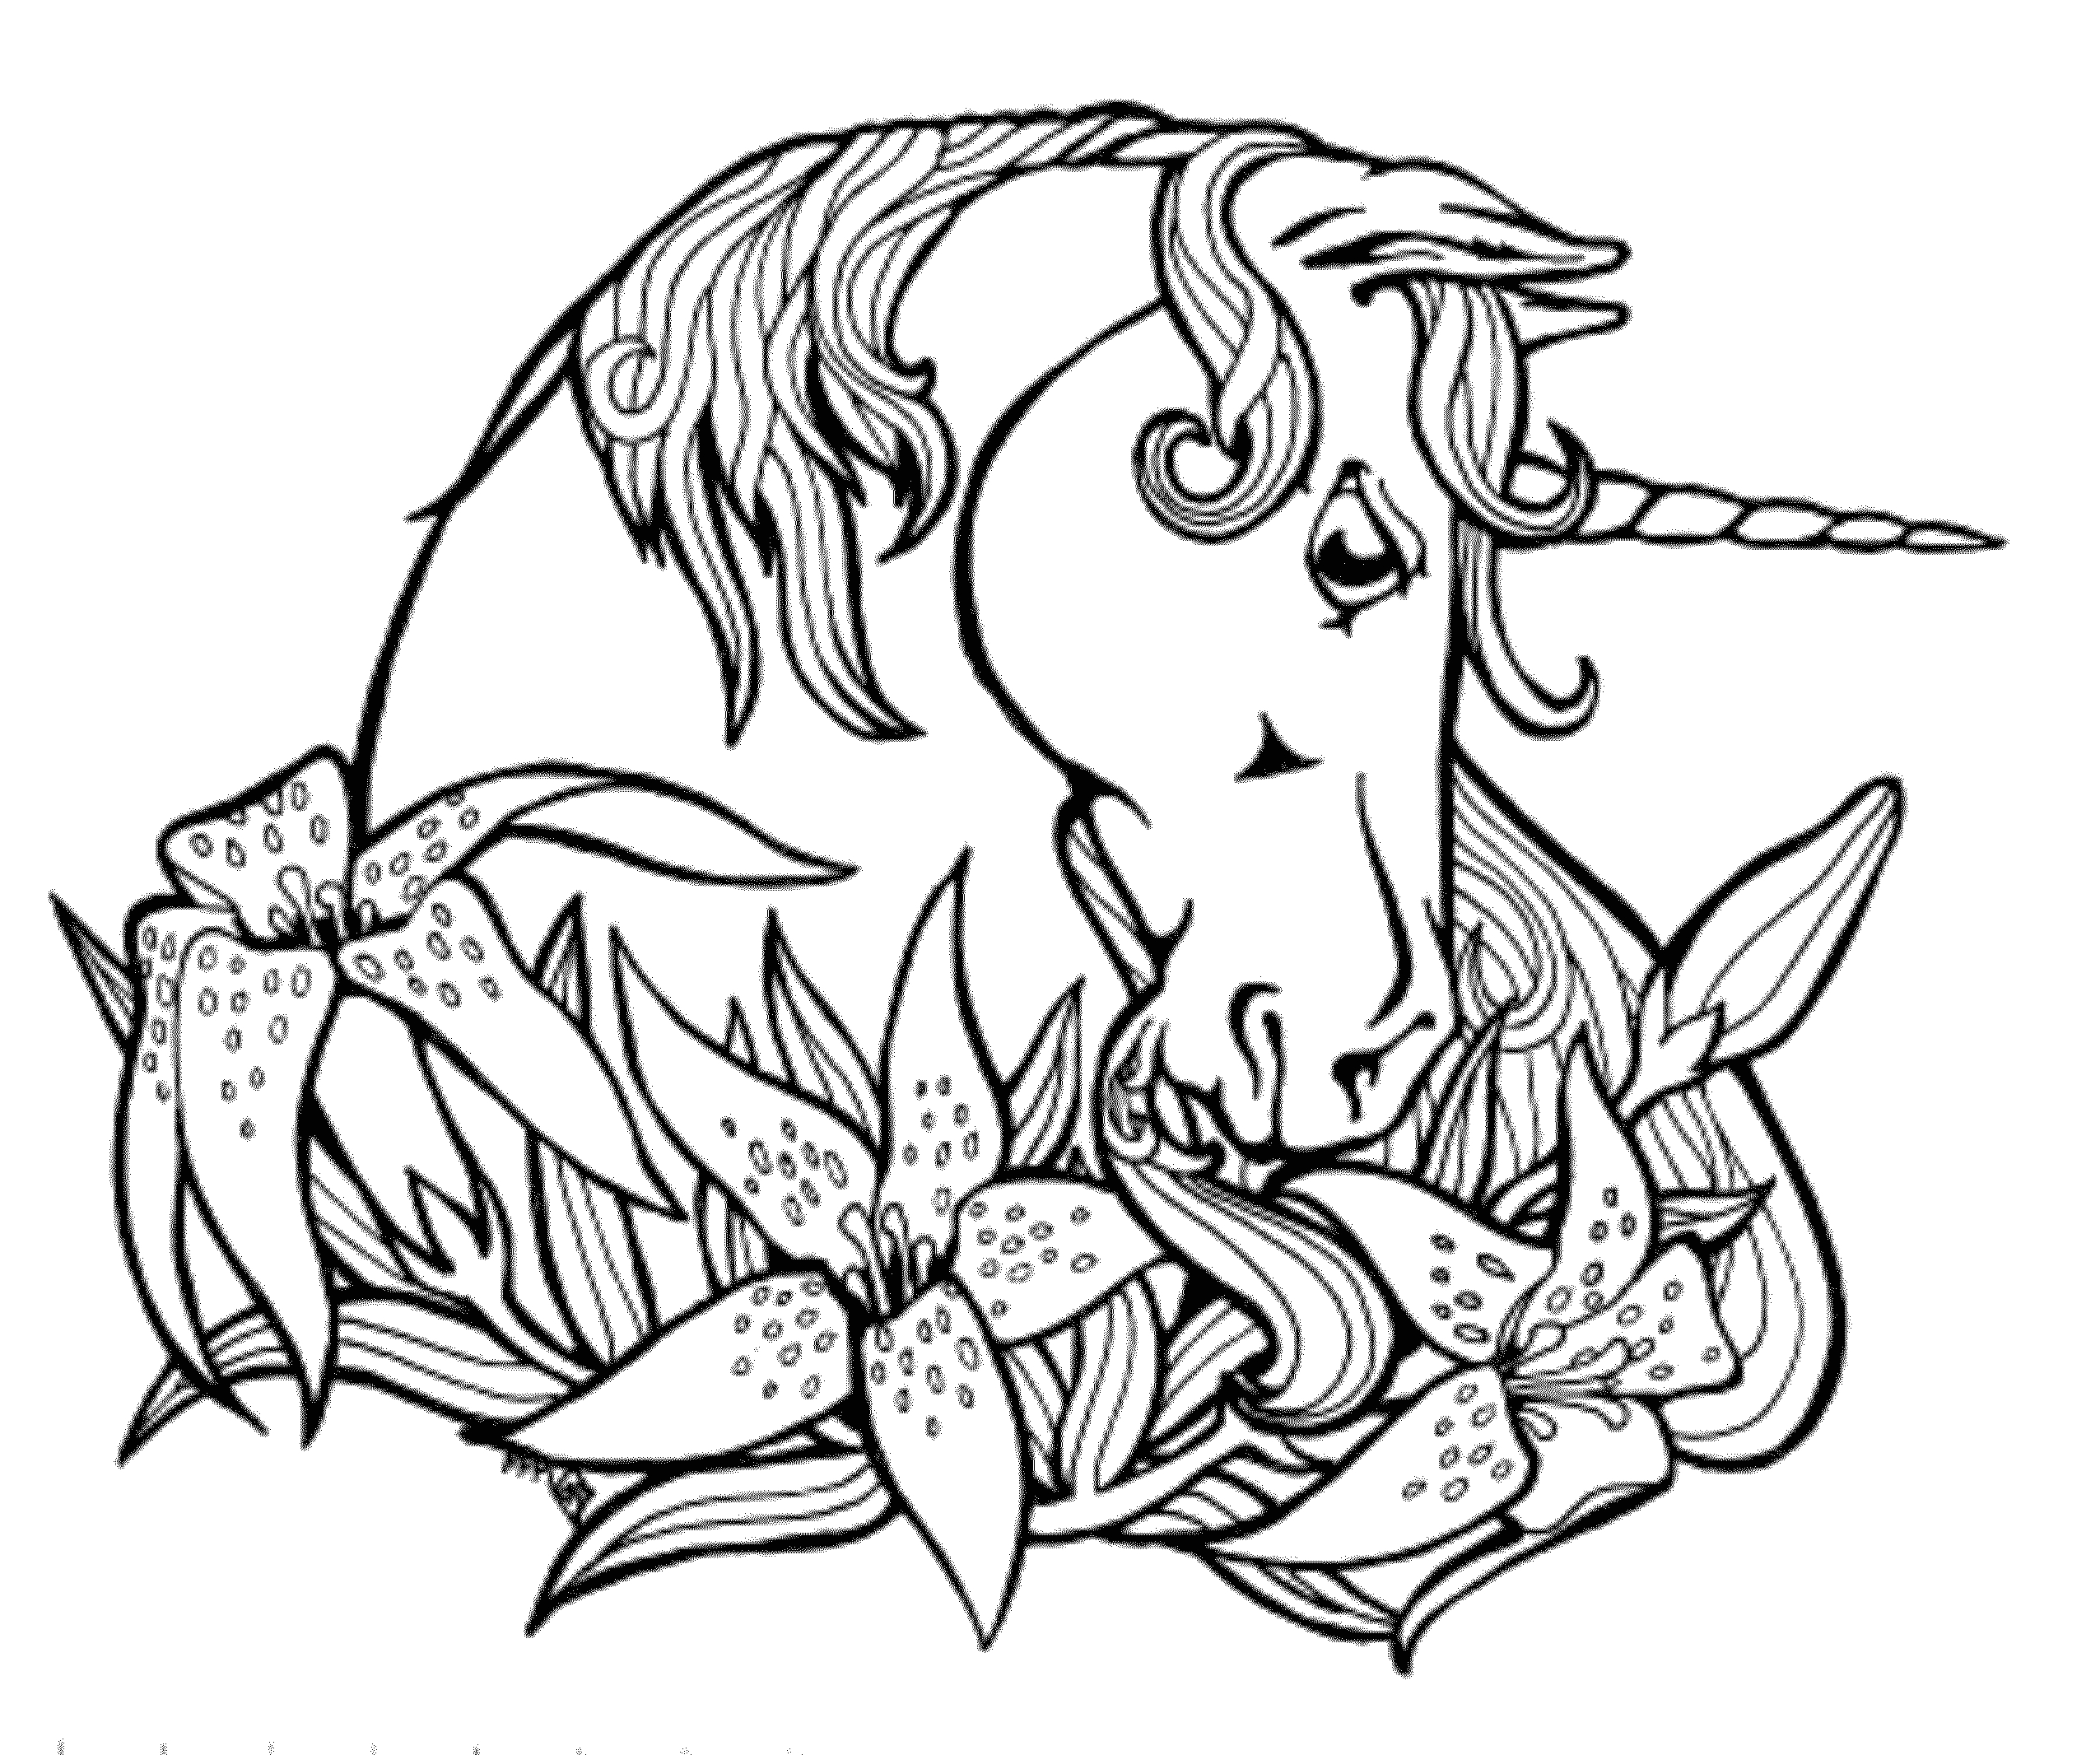 Unicorn Coloring Pages that You Can Print Print & Download Unicorn Coloring Pages for Children